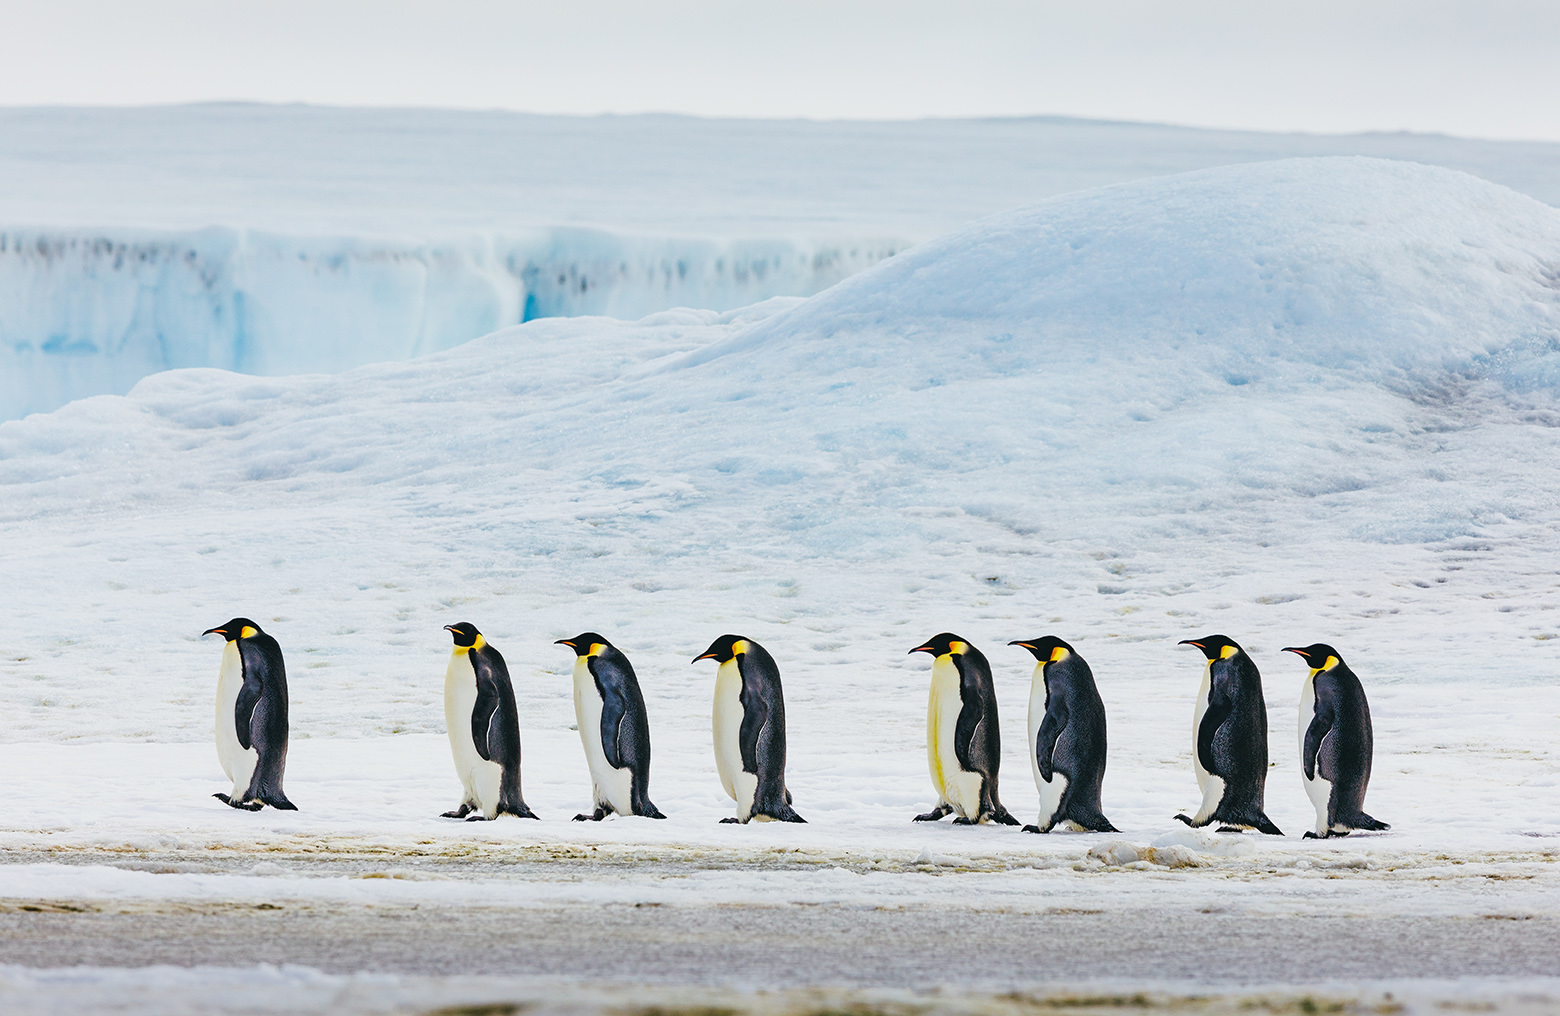 Emperor penguins are the largest of their species, and thrive in extremely cold Antarctic temperatures.